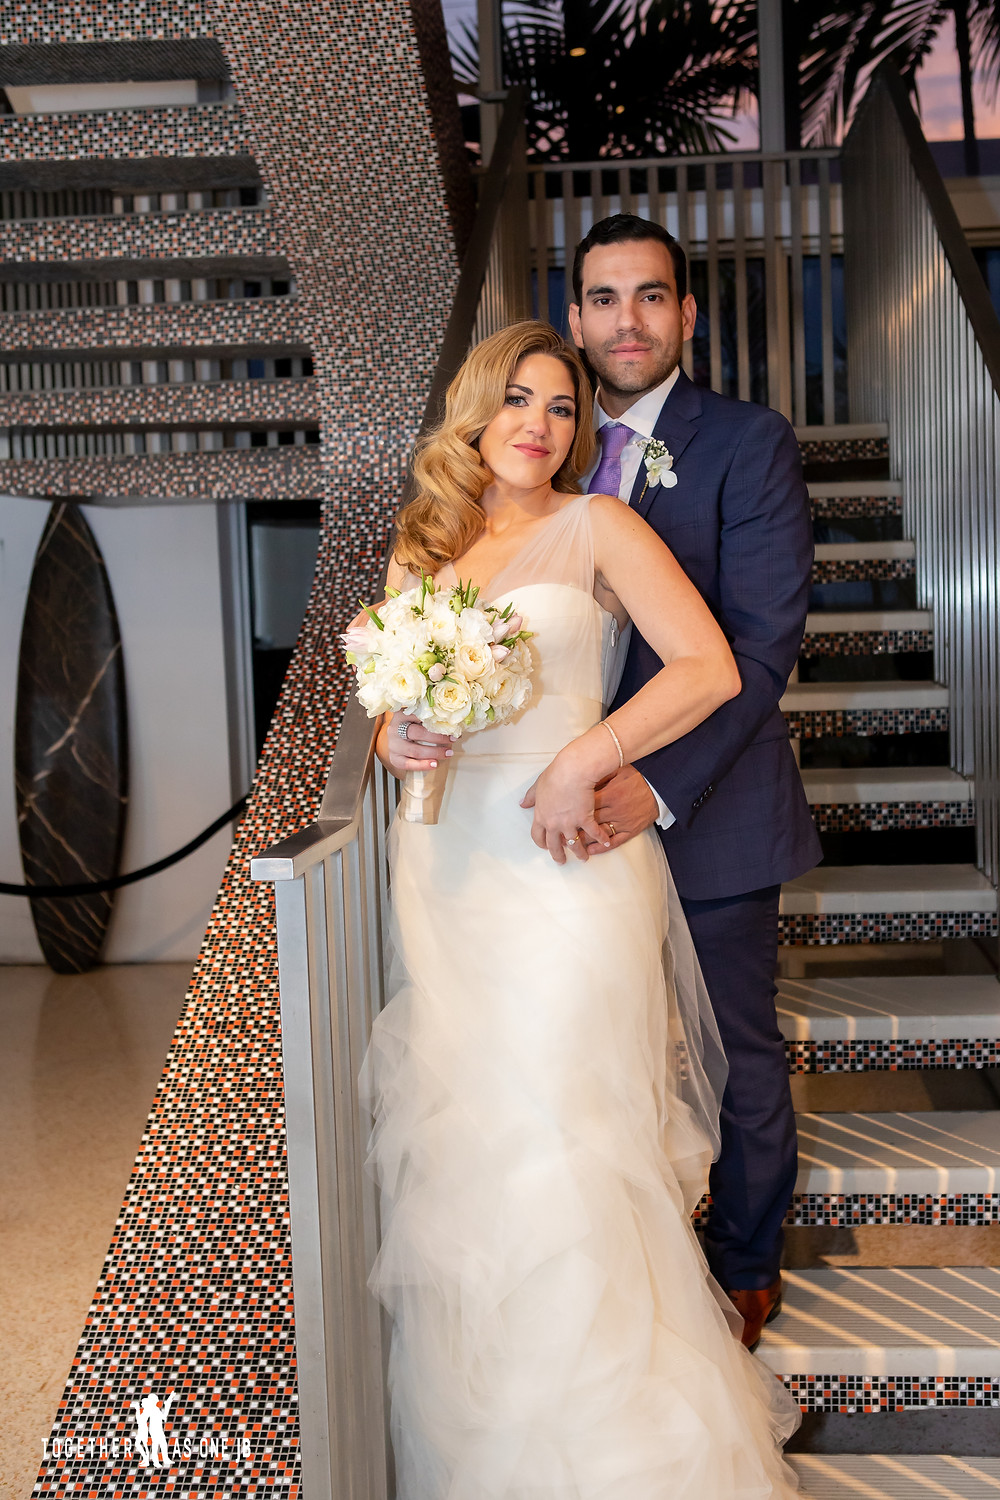 Bride and Groom posing on stairs after wedding ceremony in the M Building in Wynwood